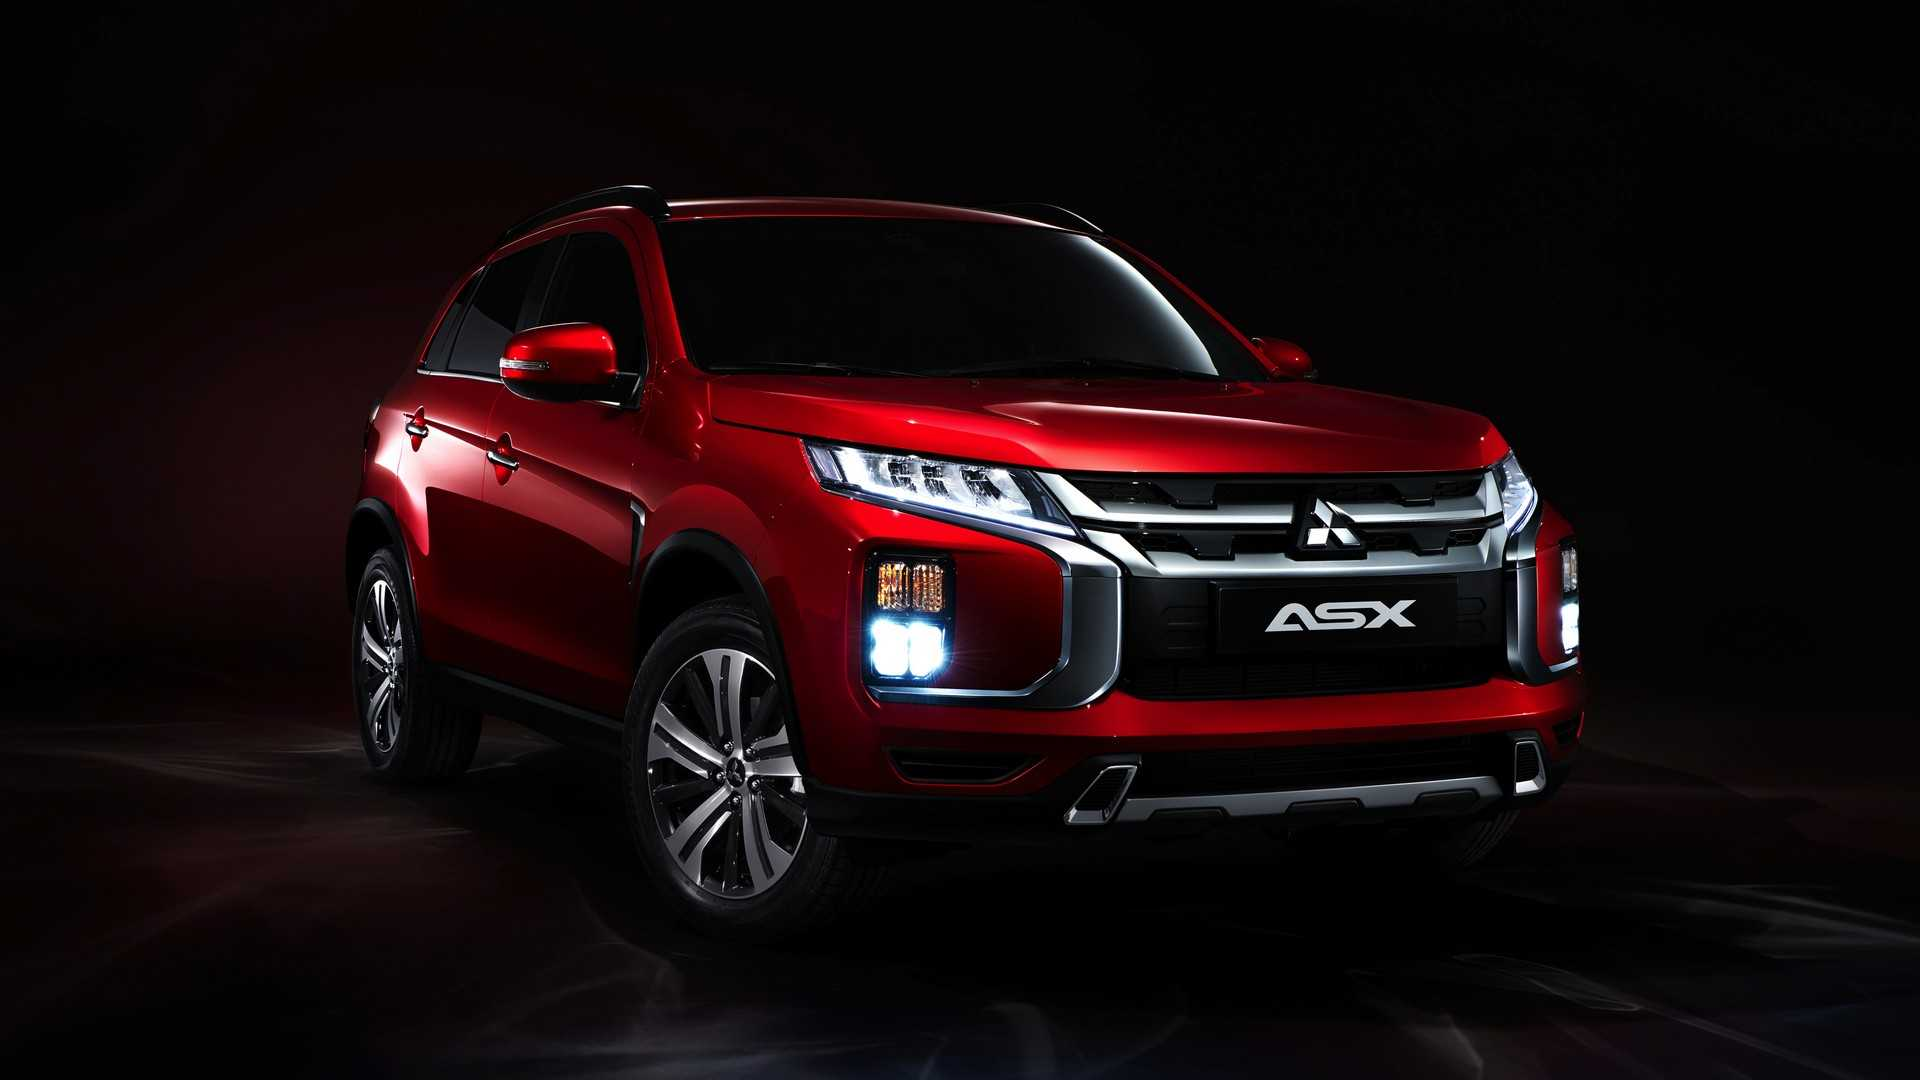 84 All New Mitsubishi Asx 2020 Brasil Redesign And Review